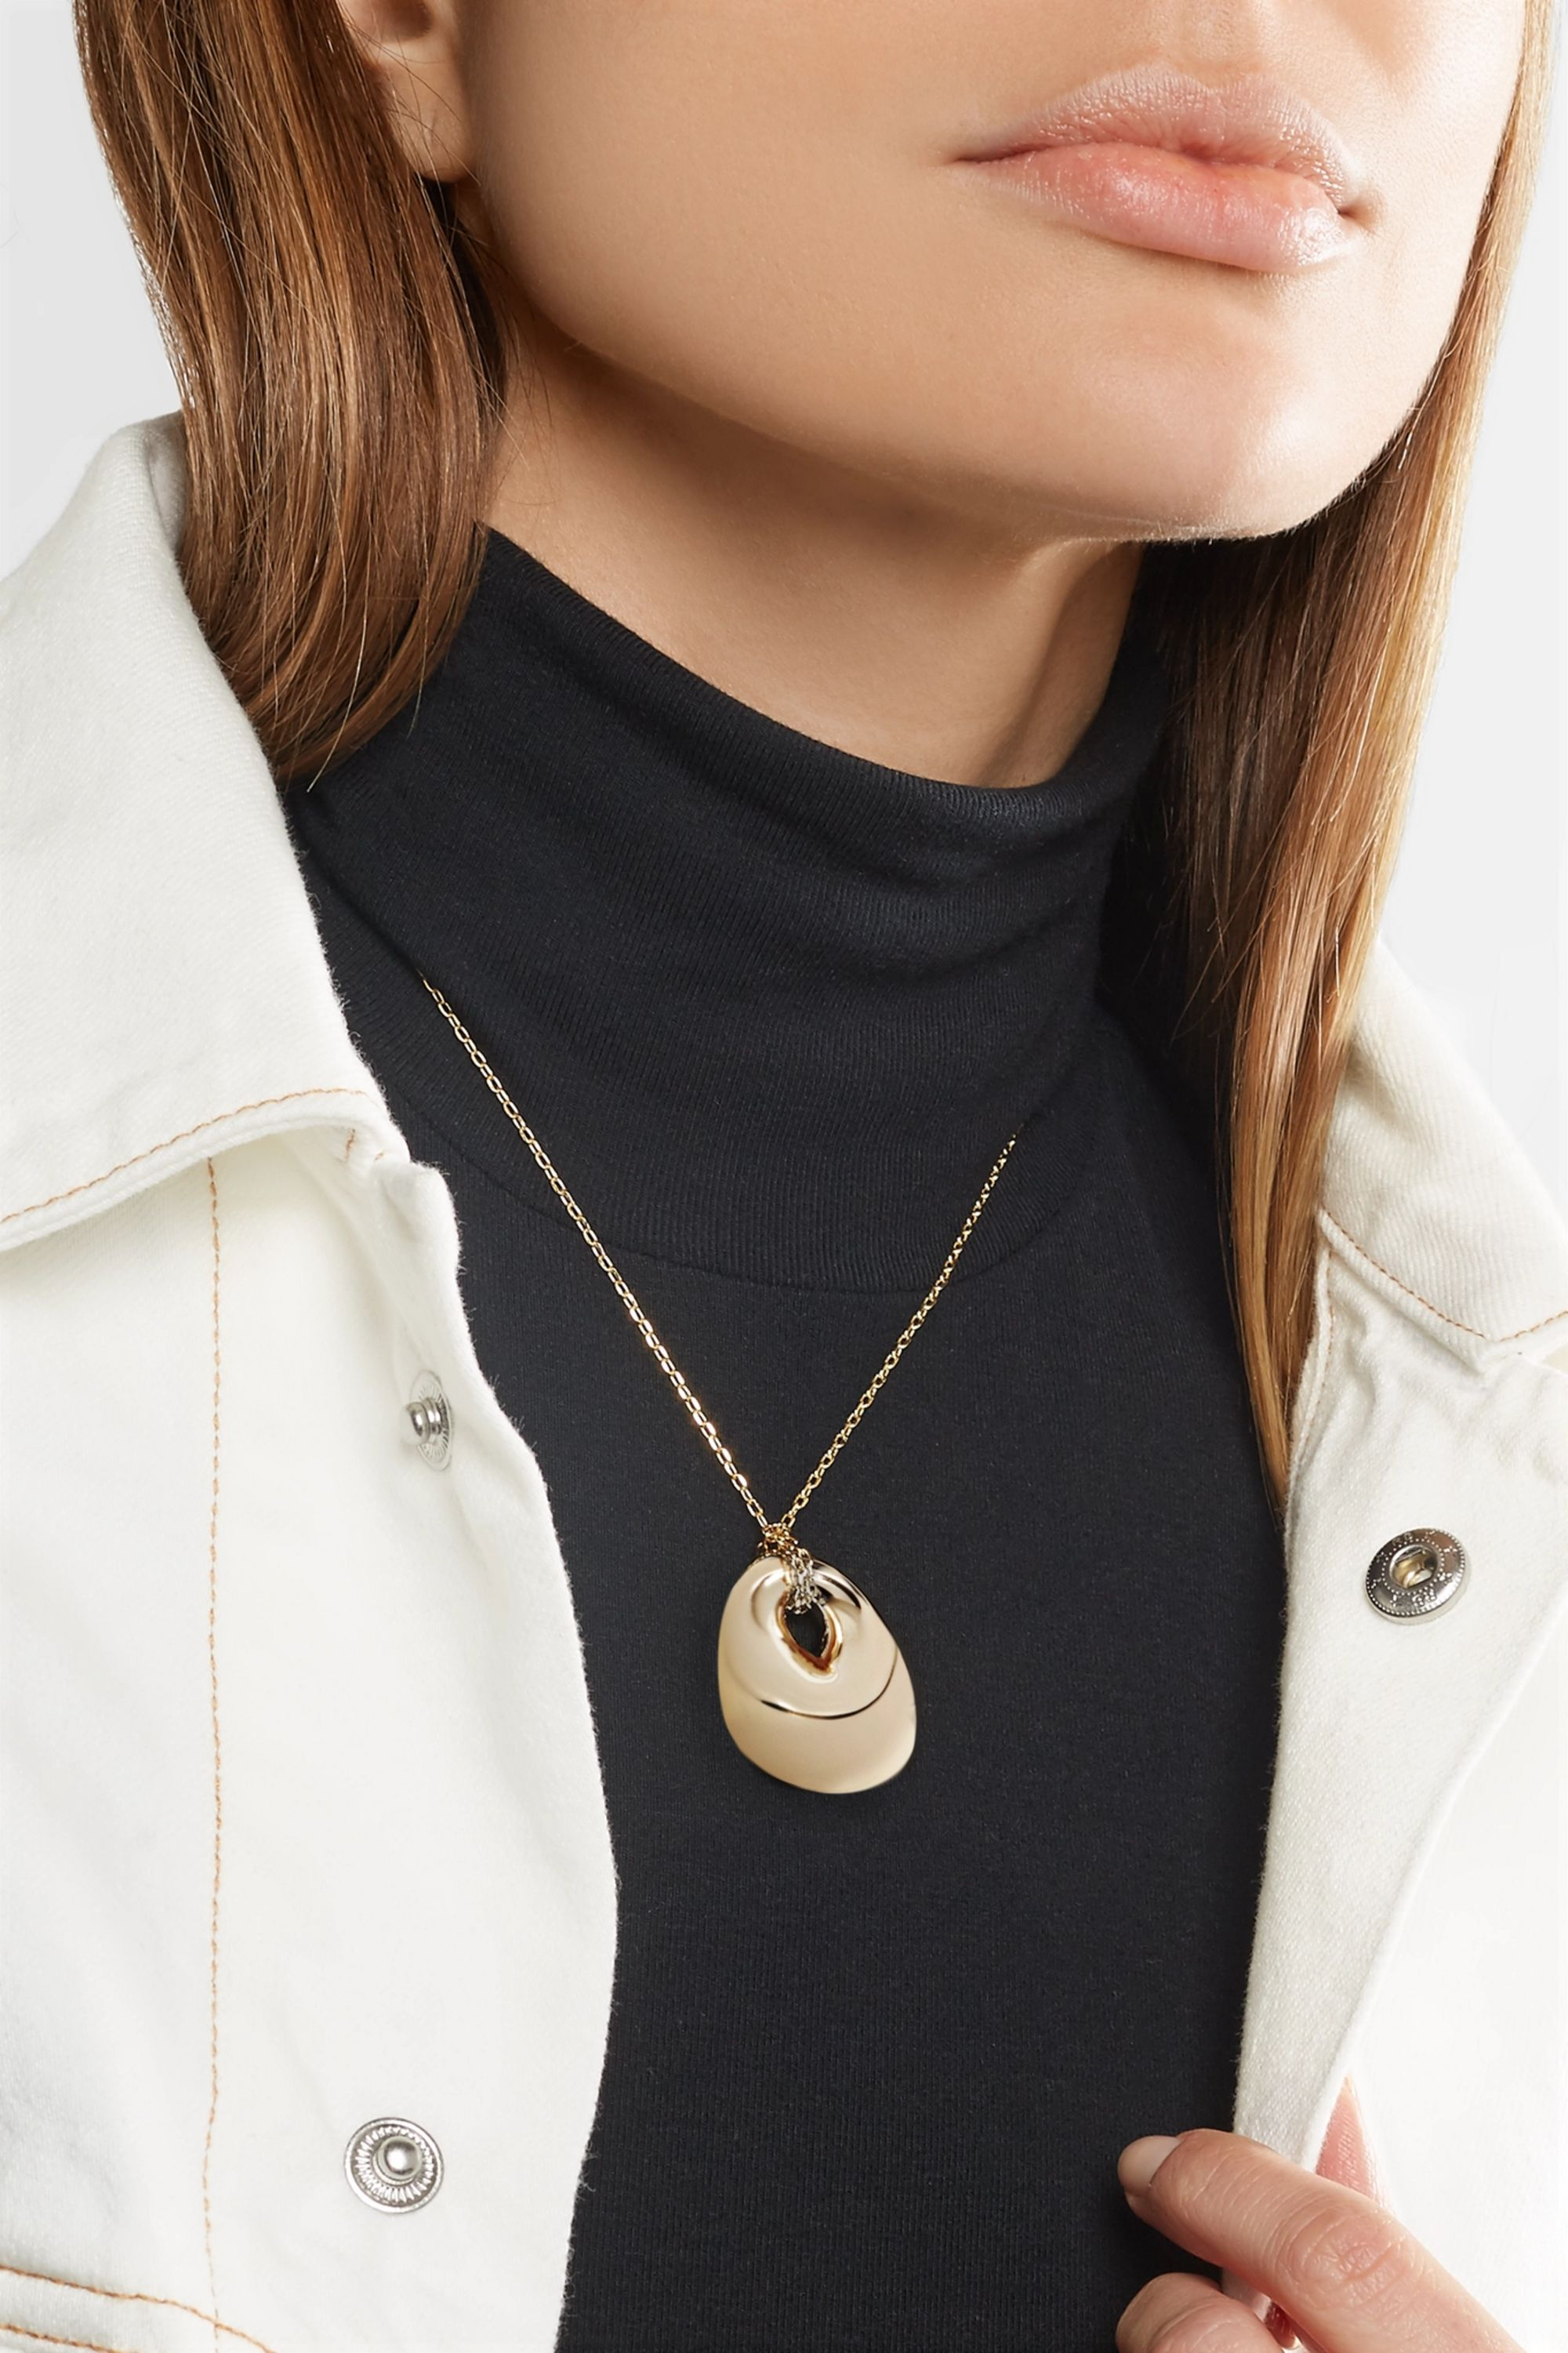 JW Anderson Gold-tone necklace